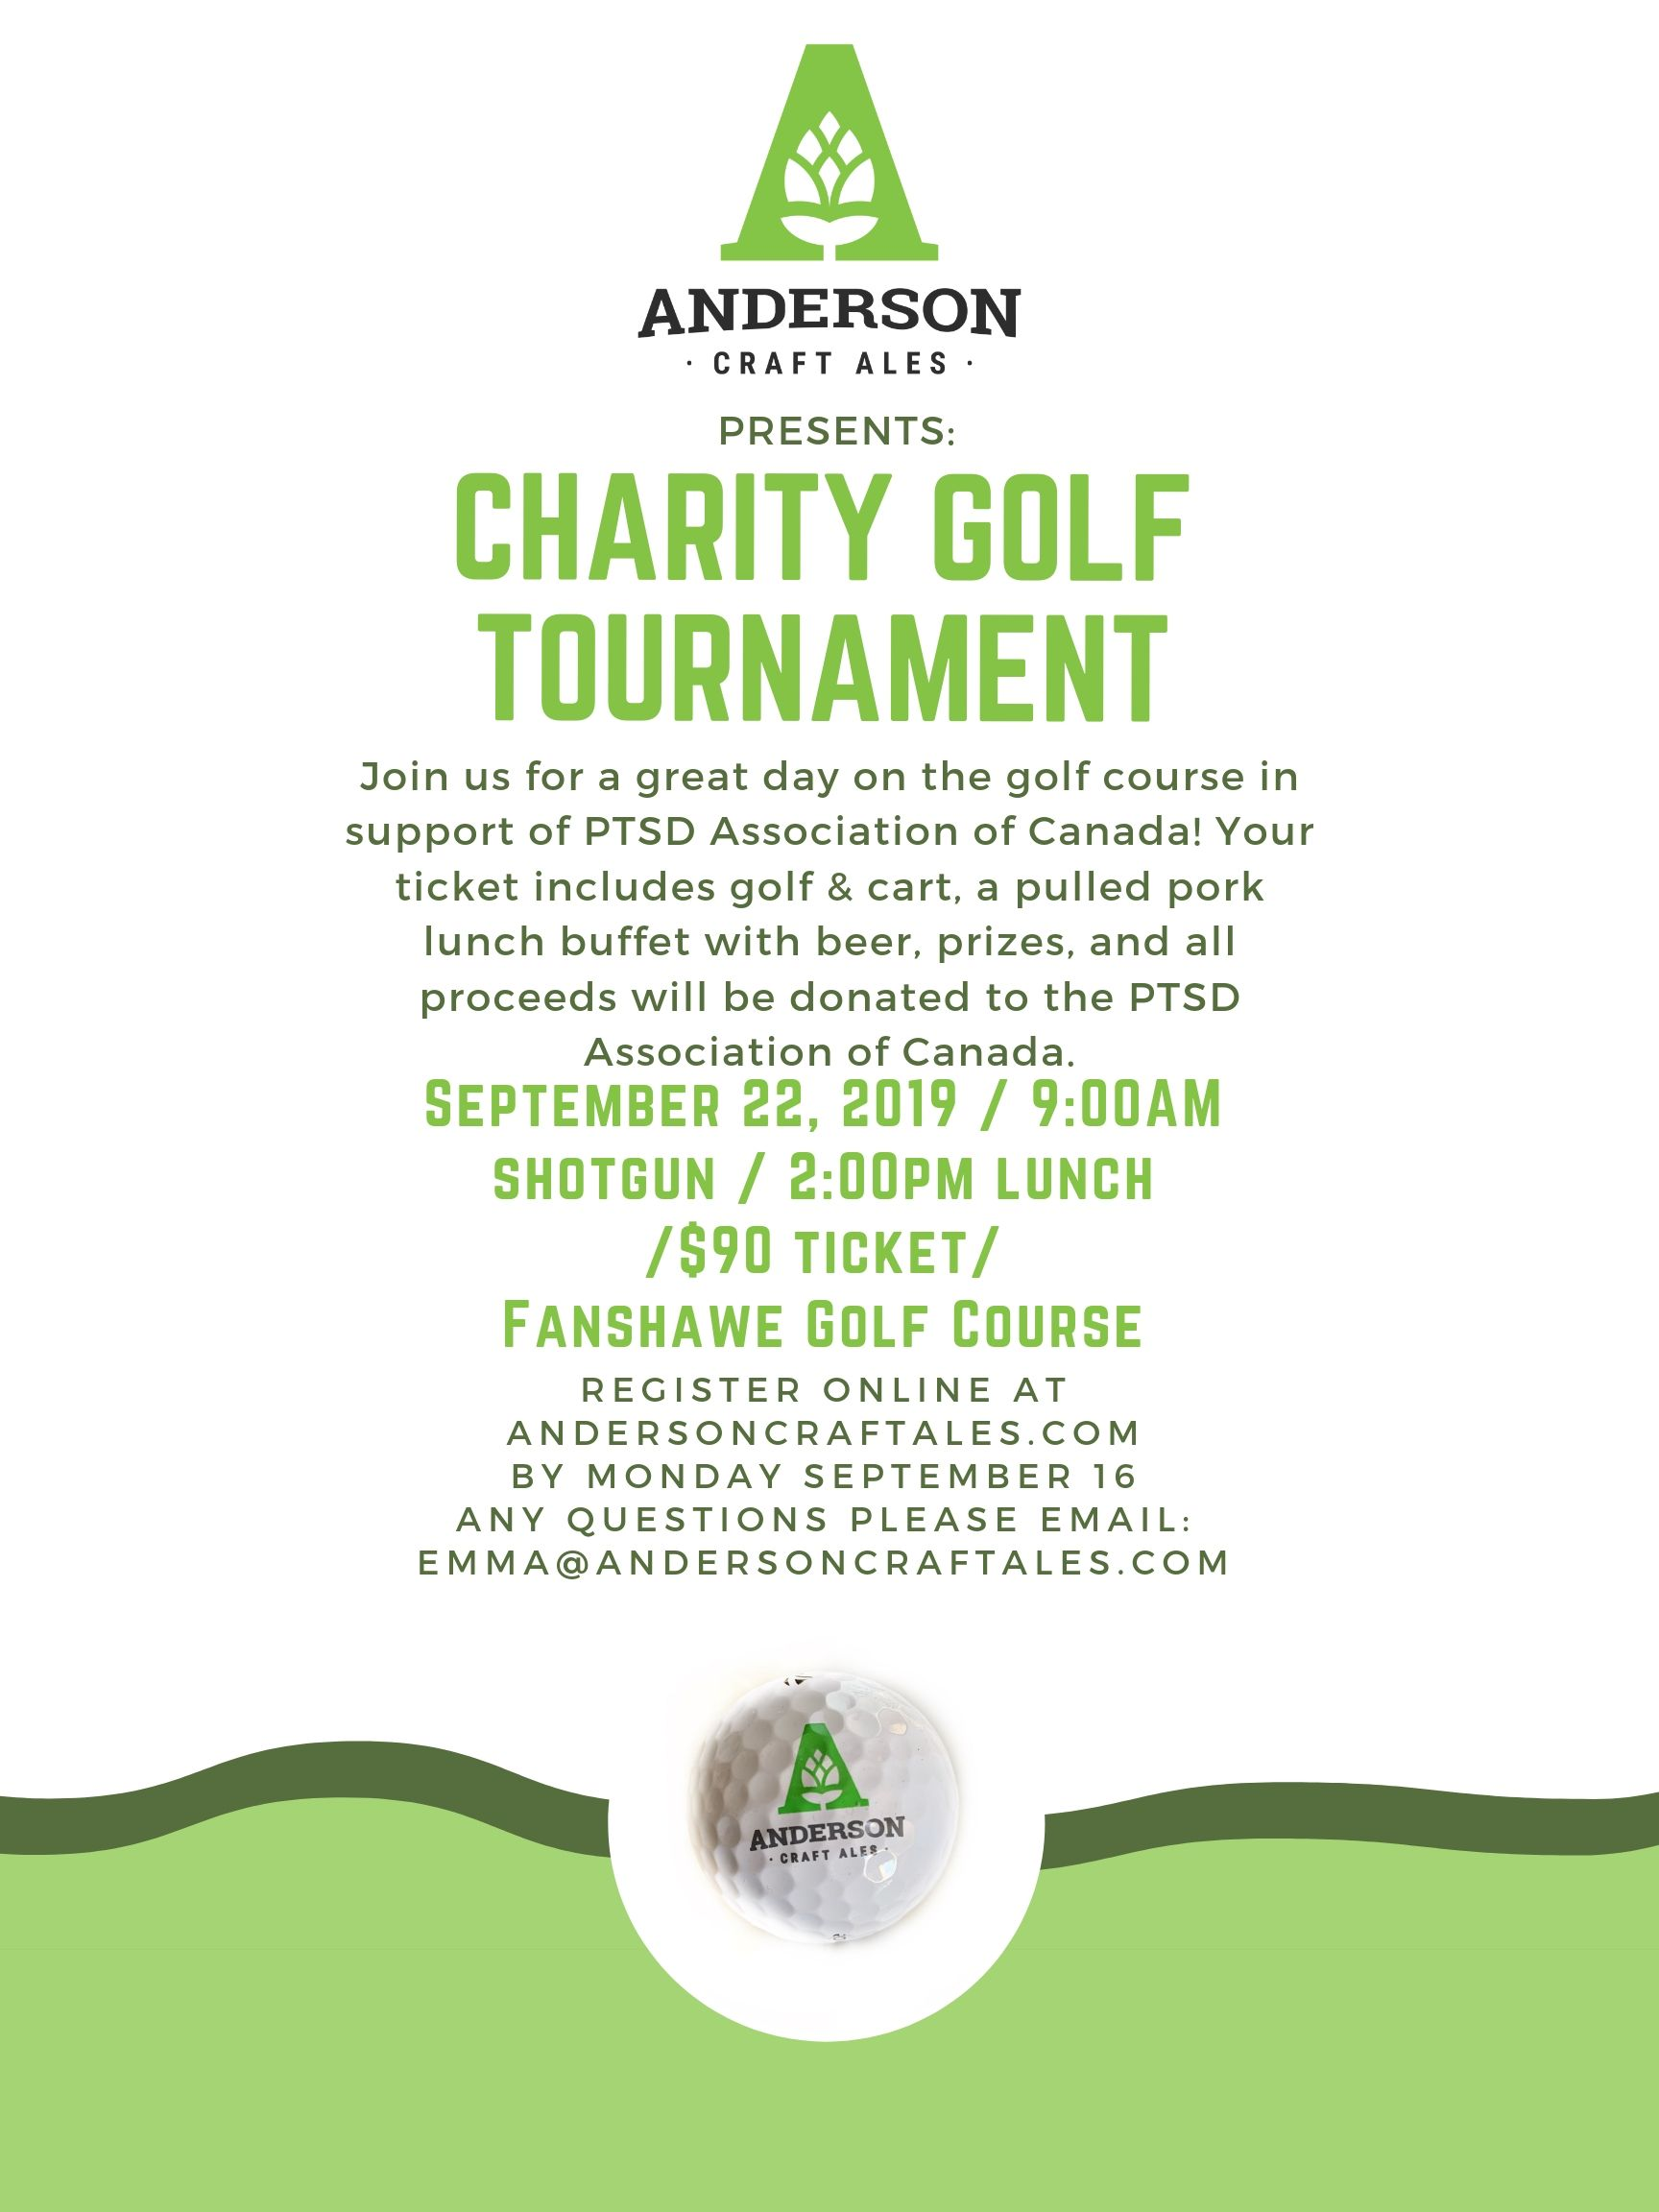 Anderson Craft Ales Charity Golf Tournament